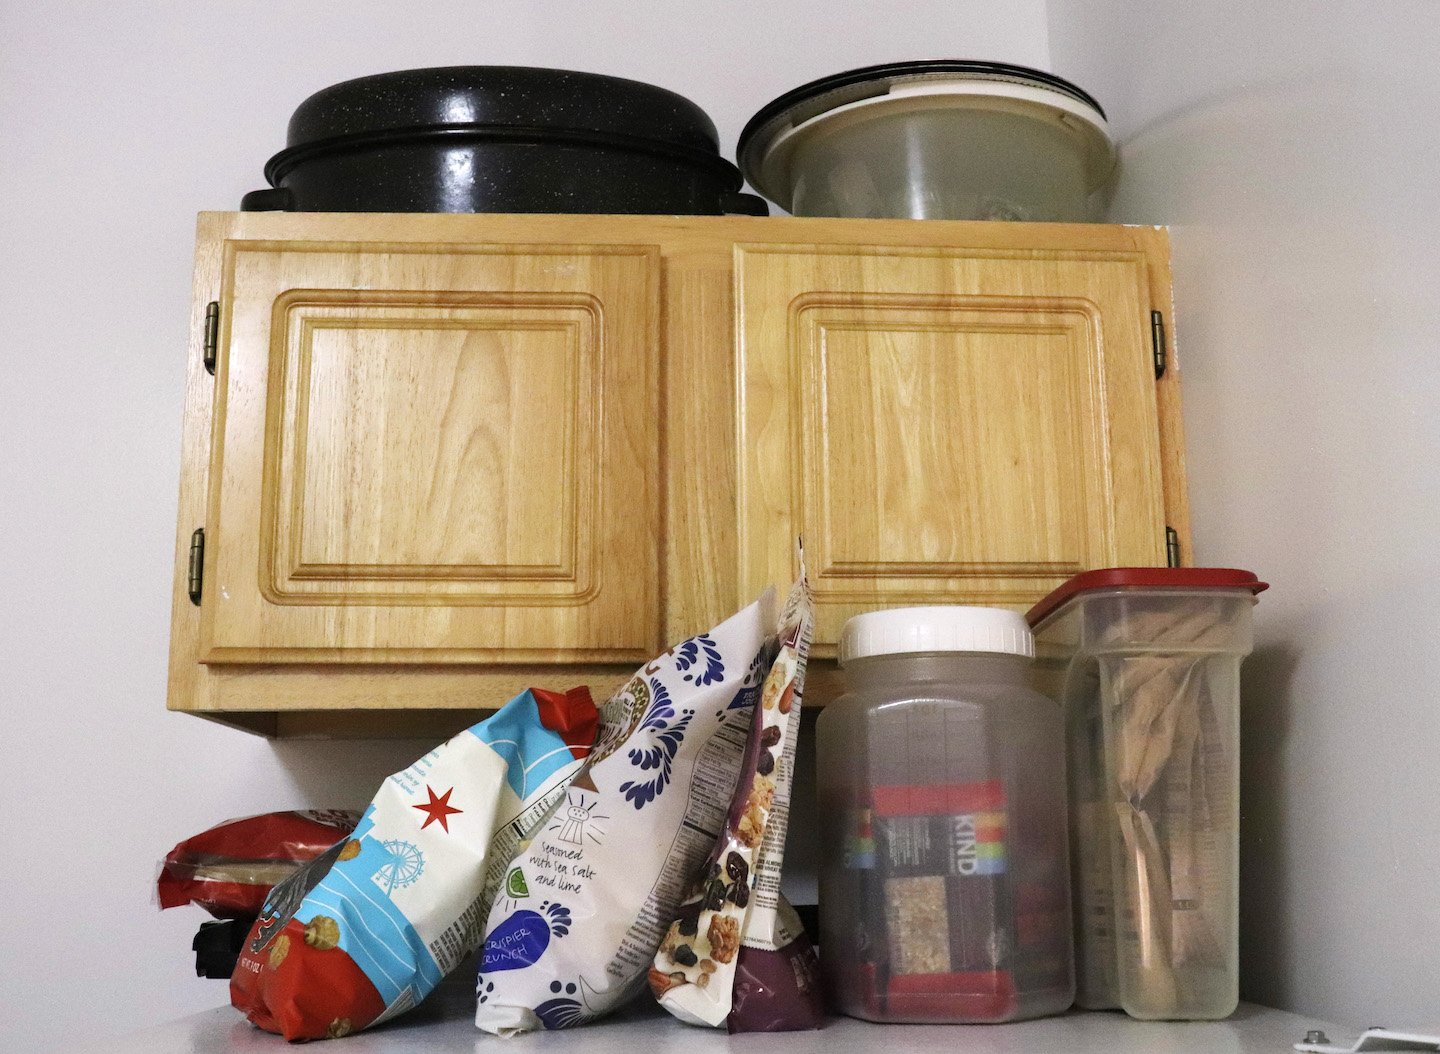 Use the top of the refrigerator for extra storage space in kitchen